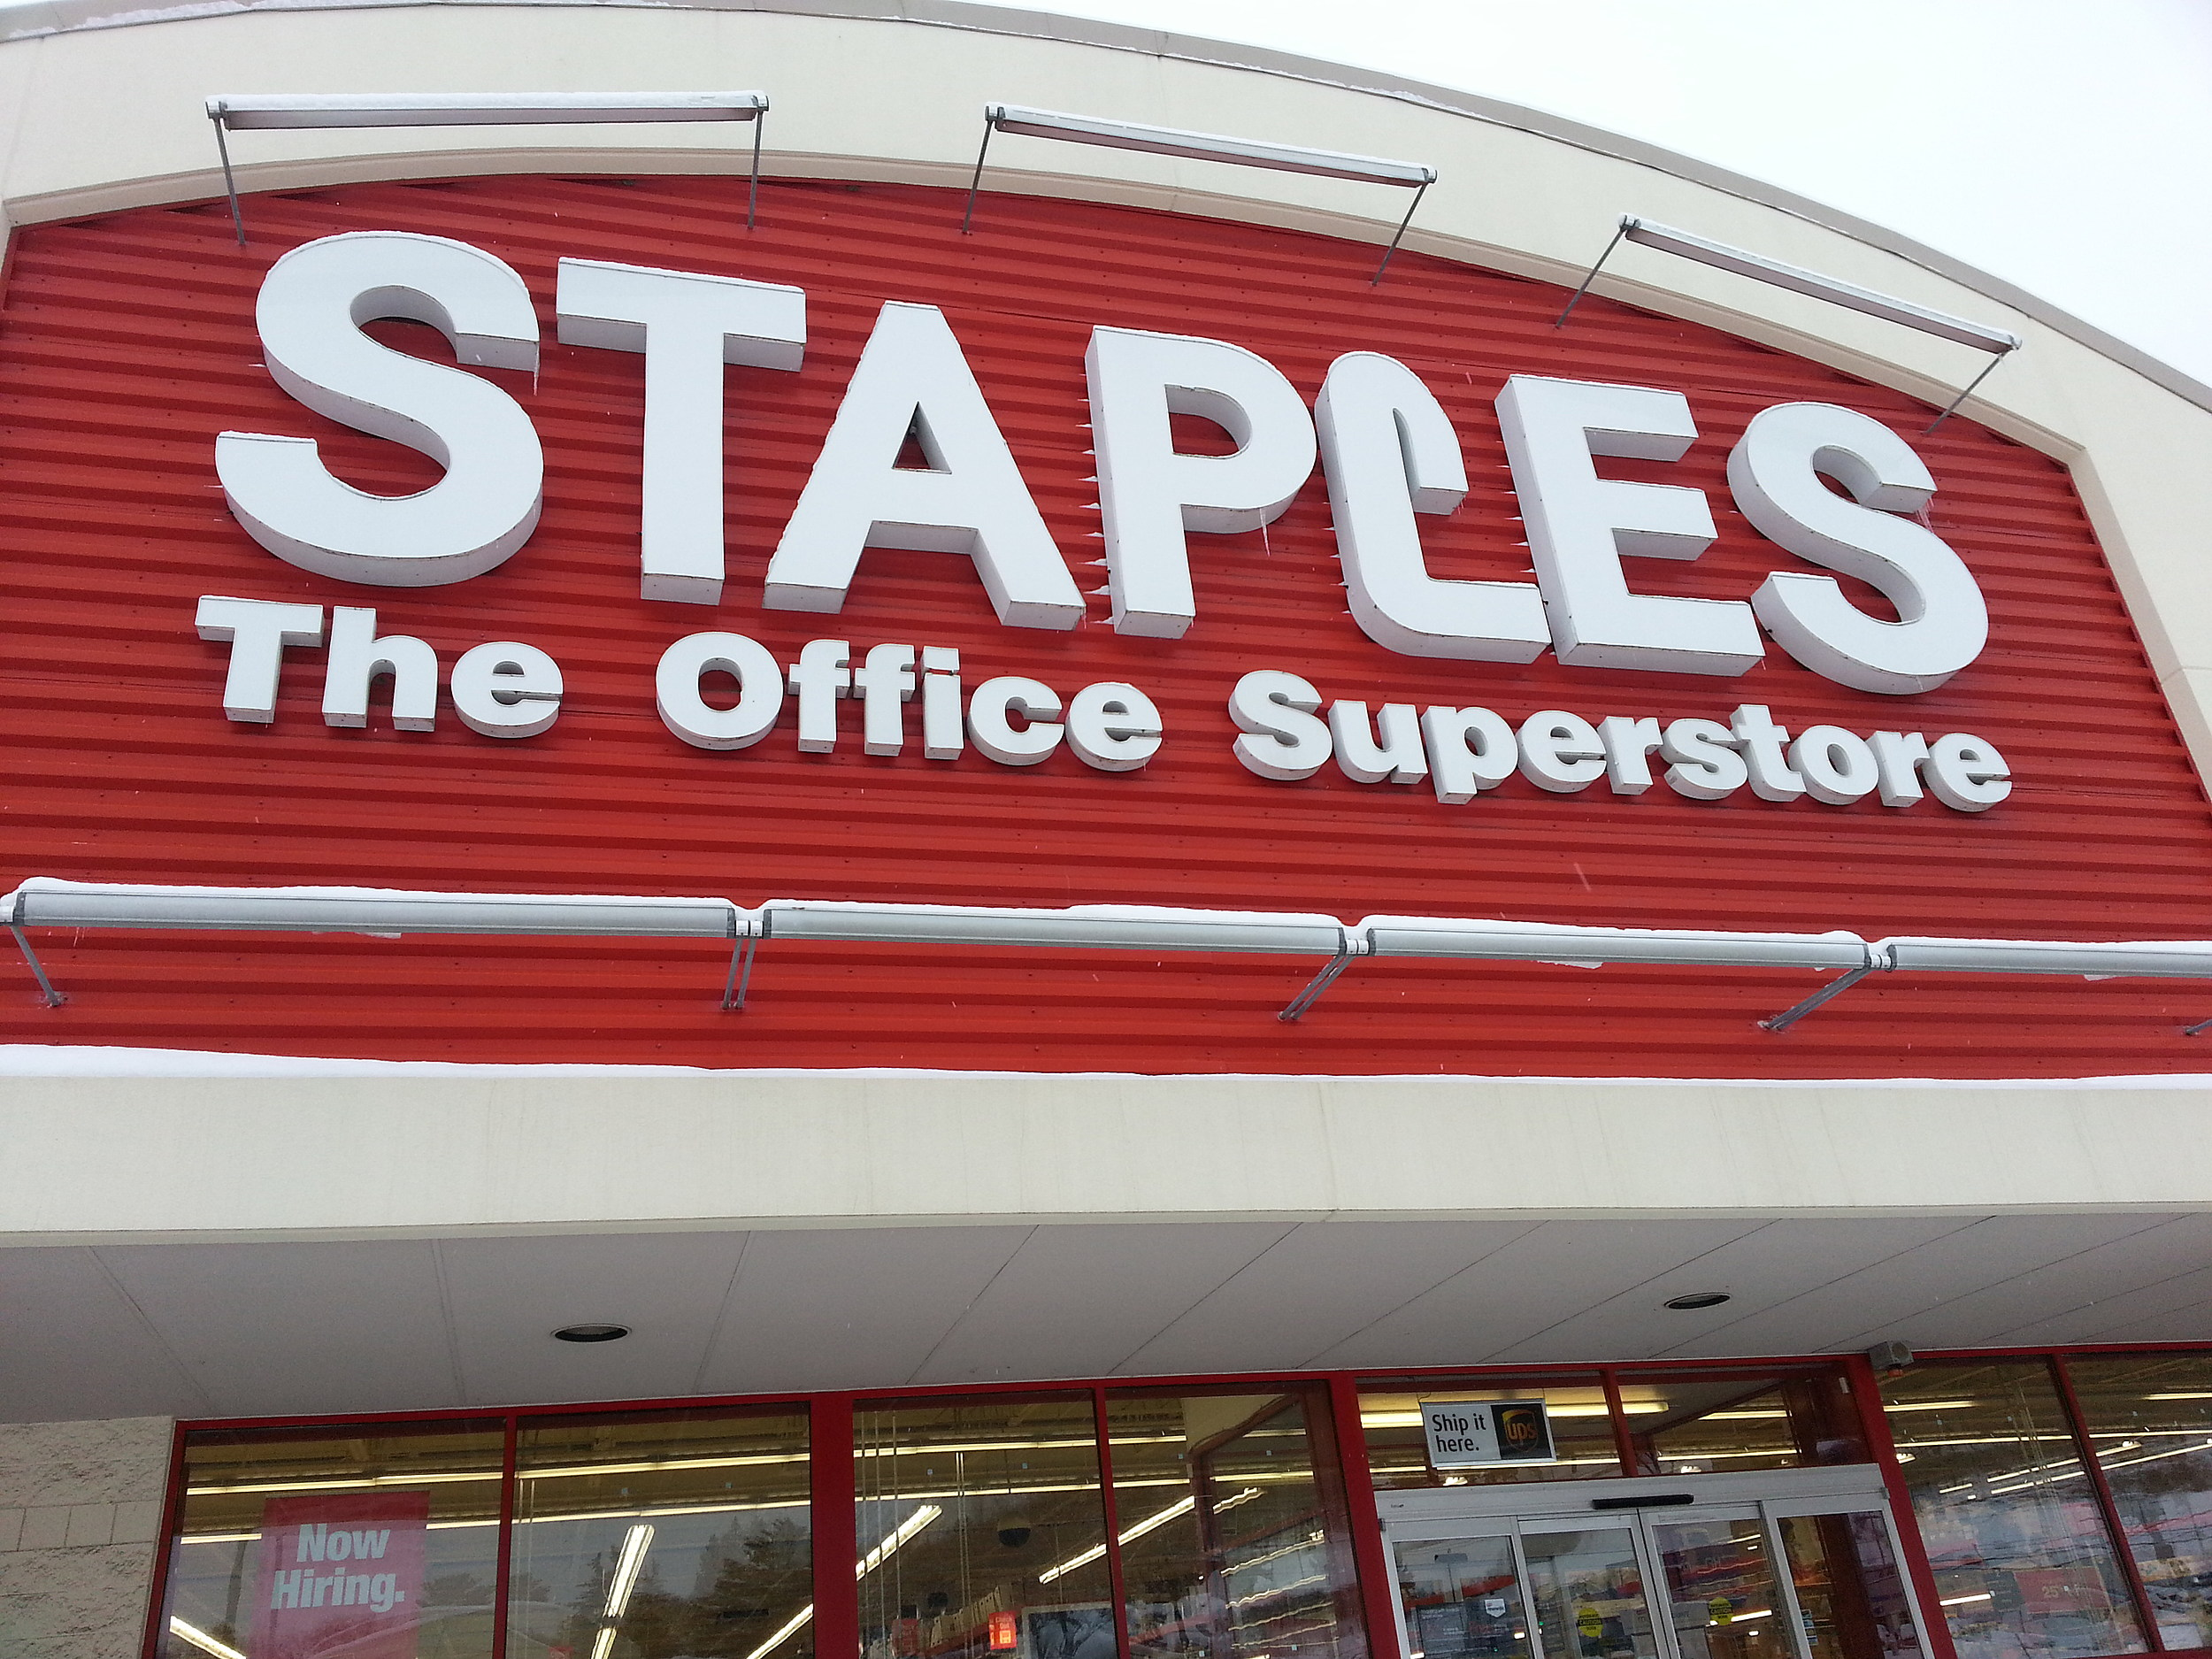 staples is closing its store on upper front street in april